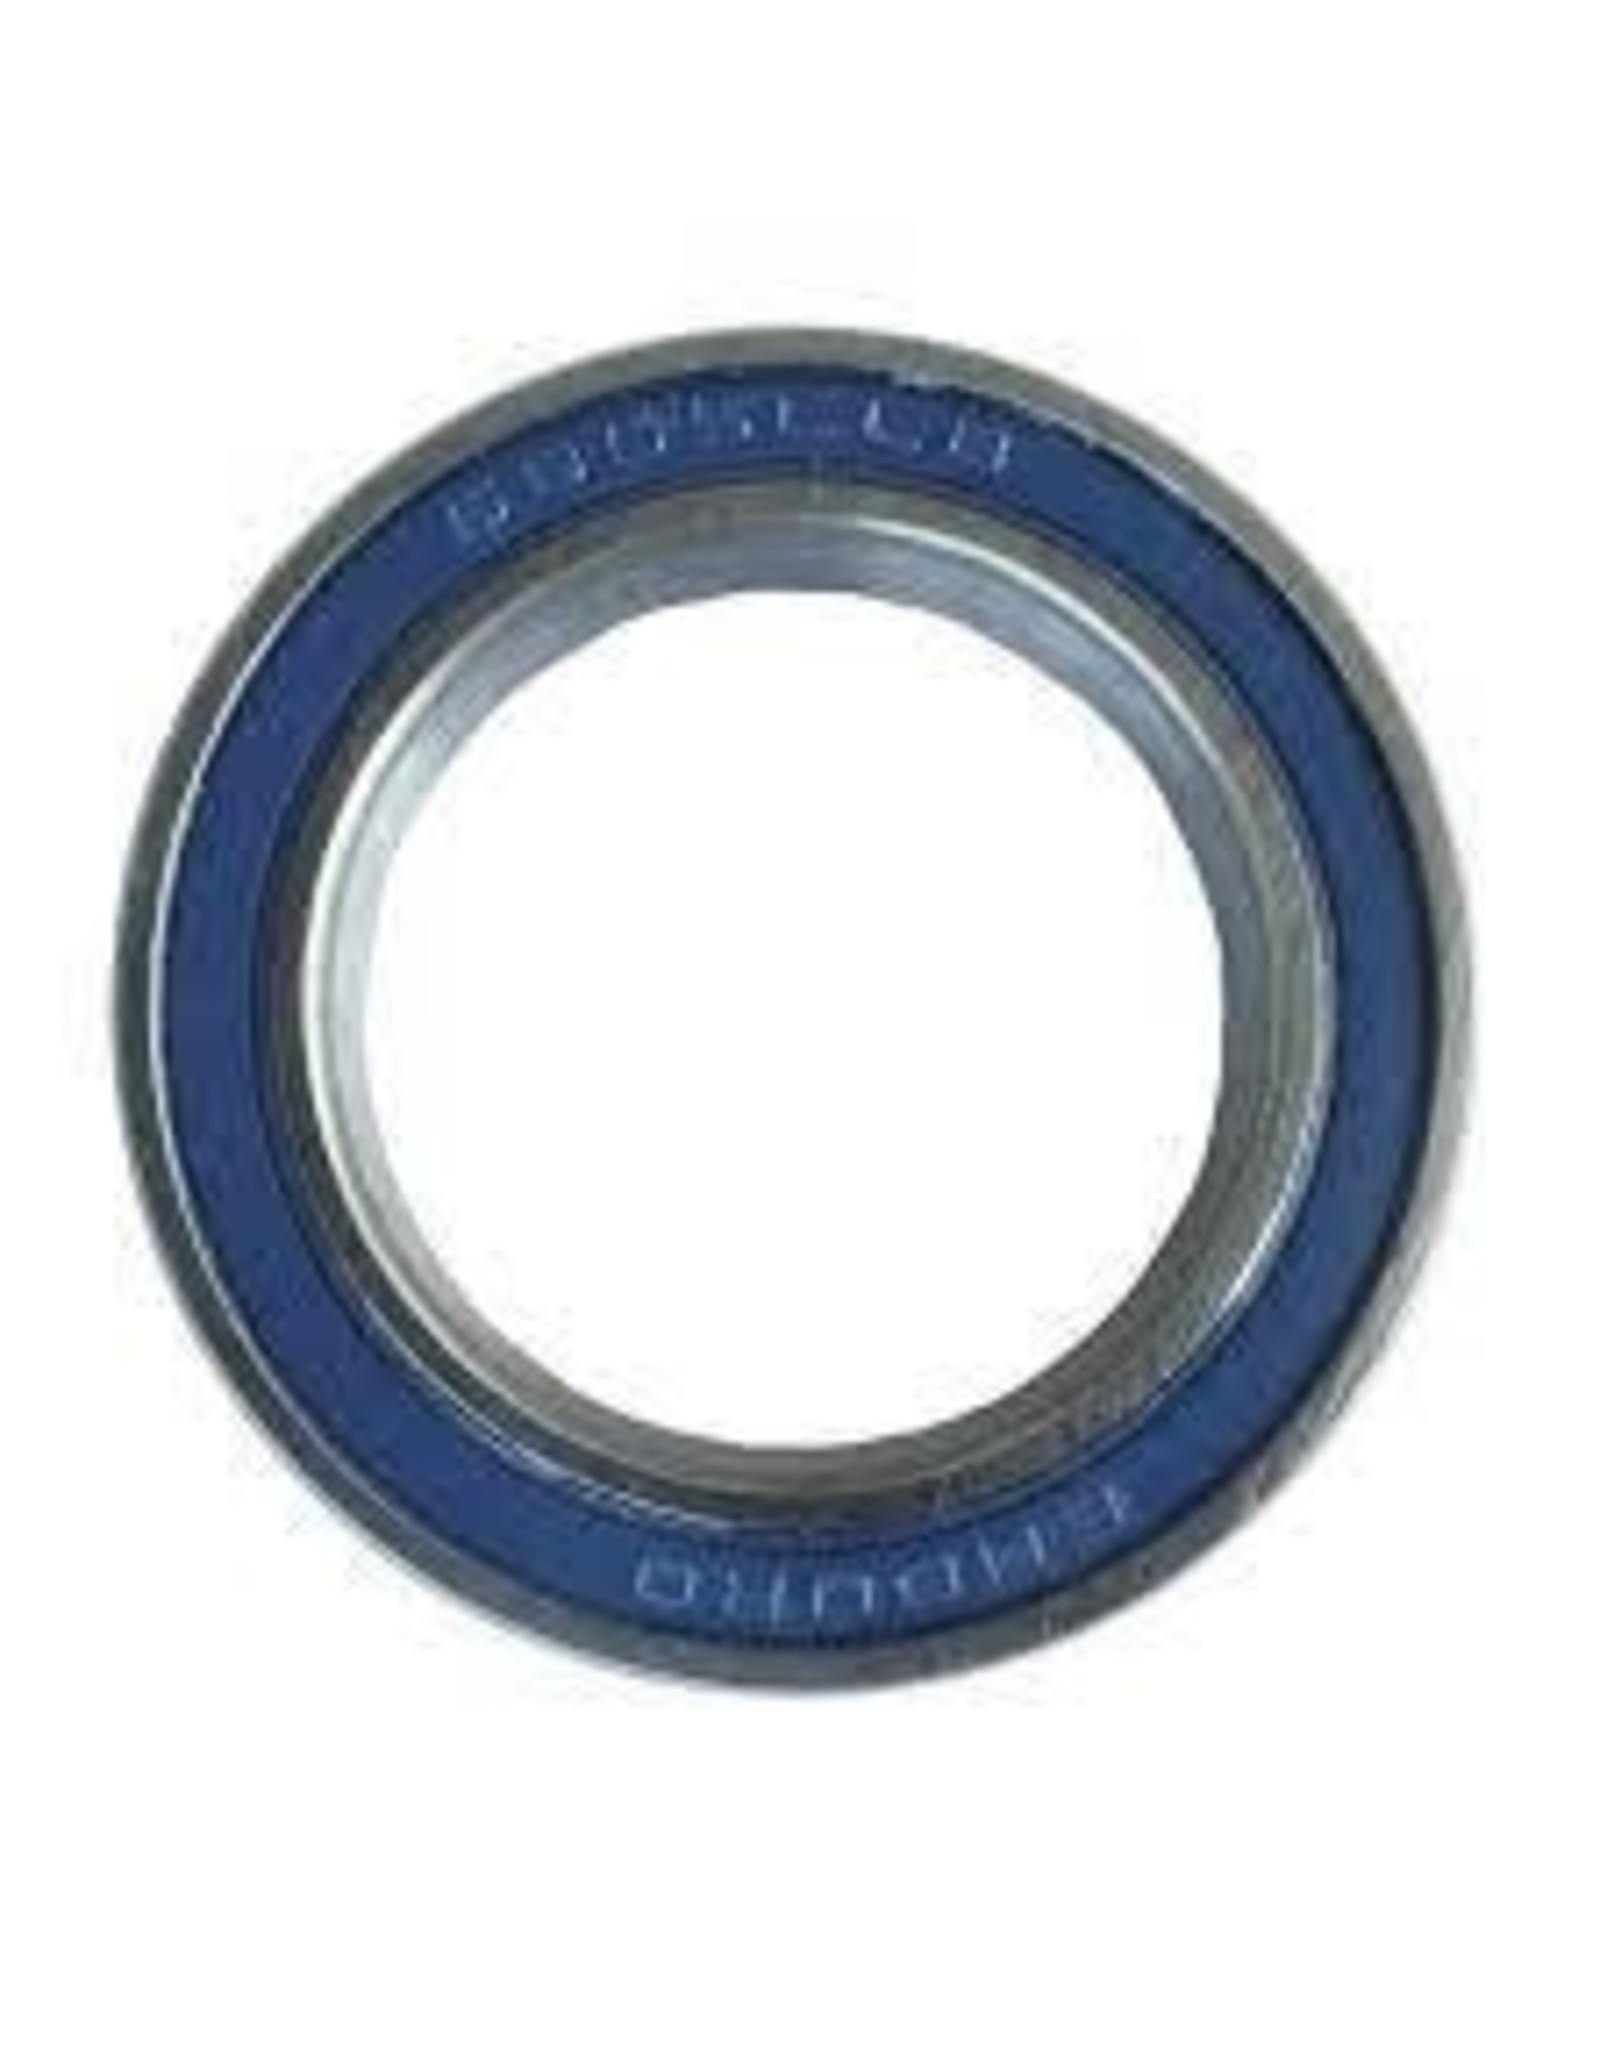 Enduro Bearing Enduro 6805 Sealed Cartridge Bearing